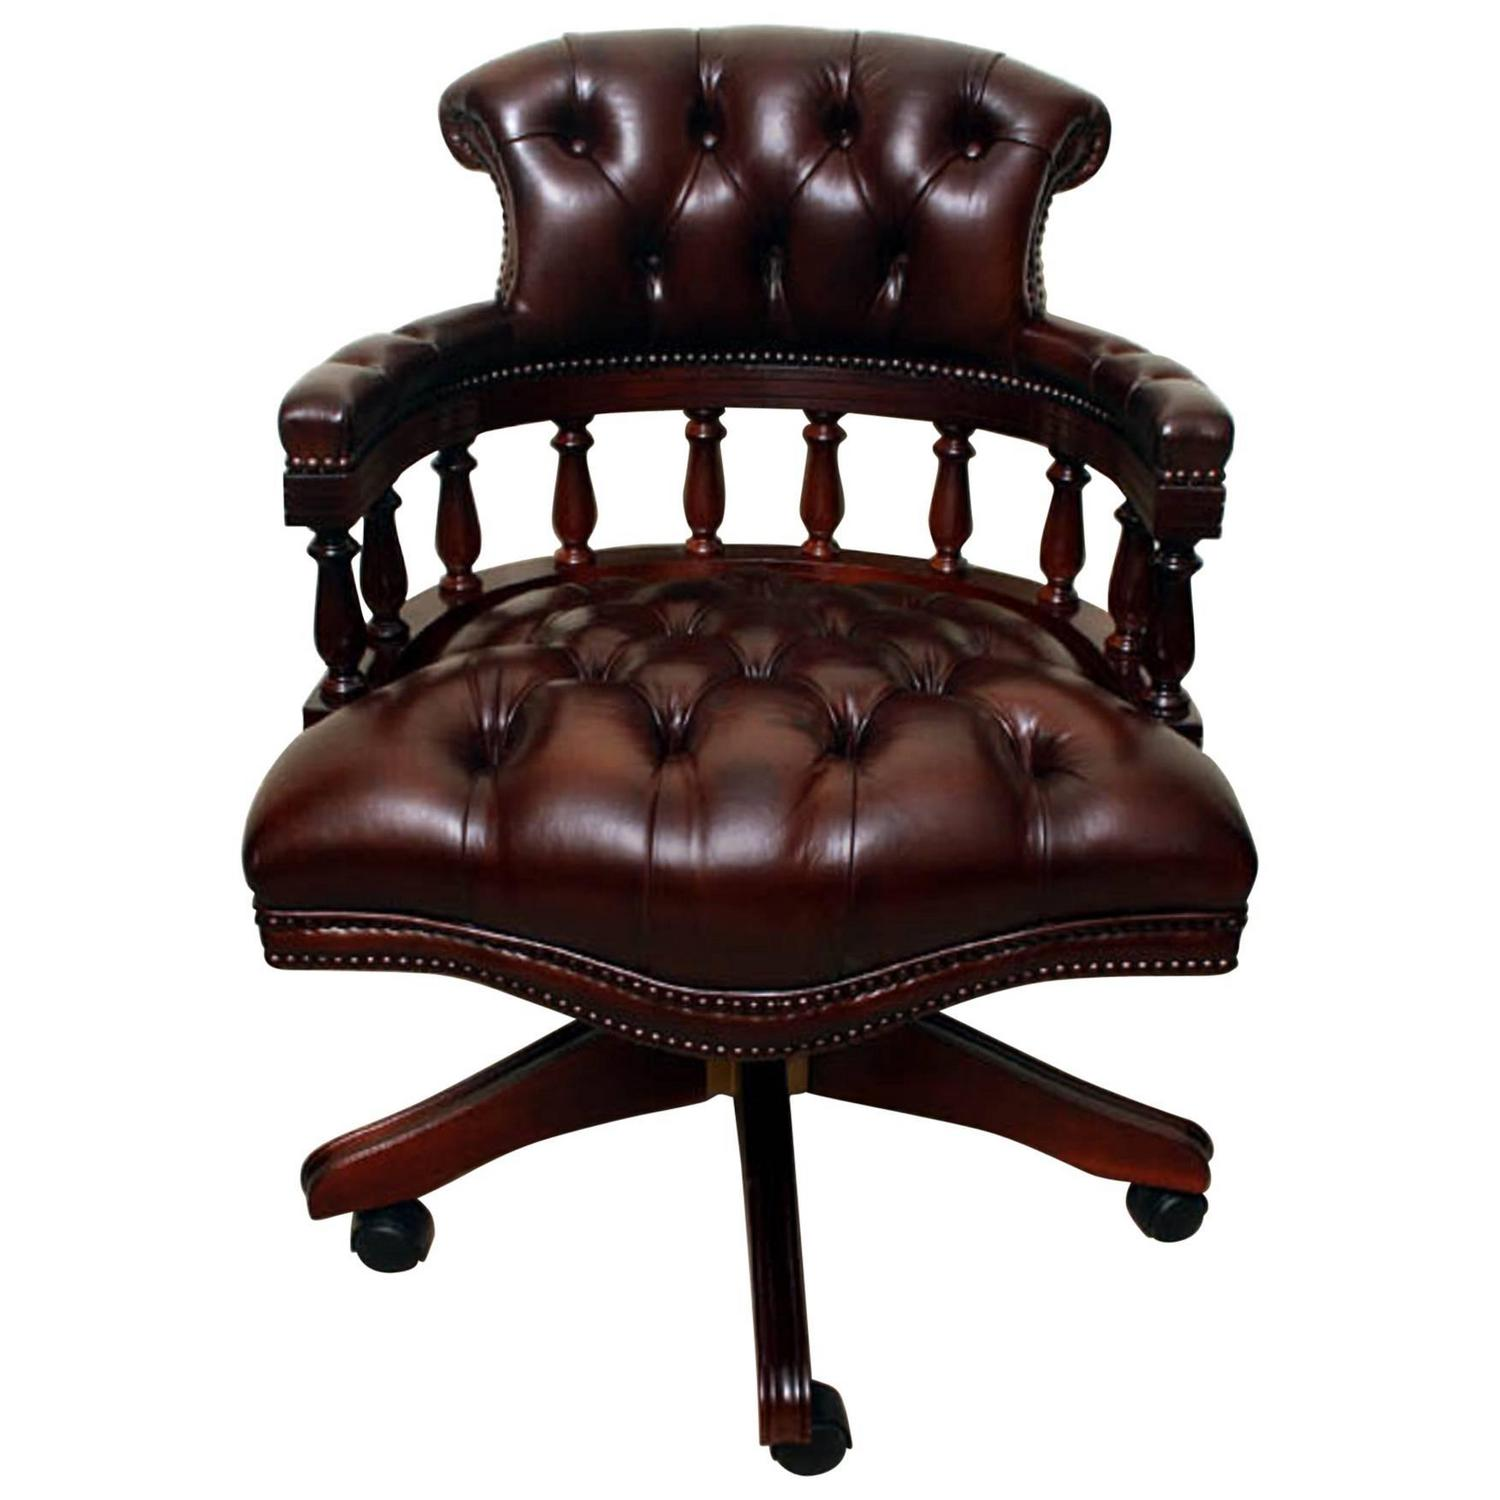 unique leather office chairs salon chair and shampoo bowl english handmade captains desk for sale at